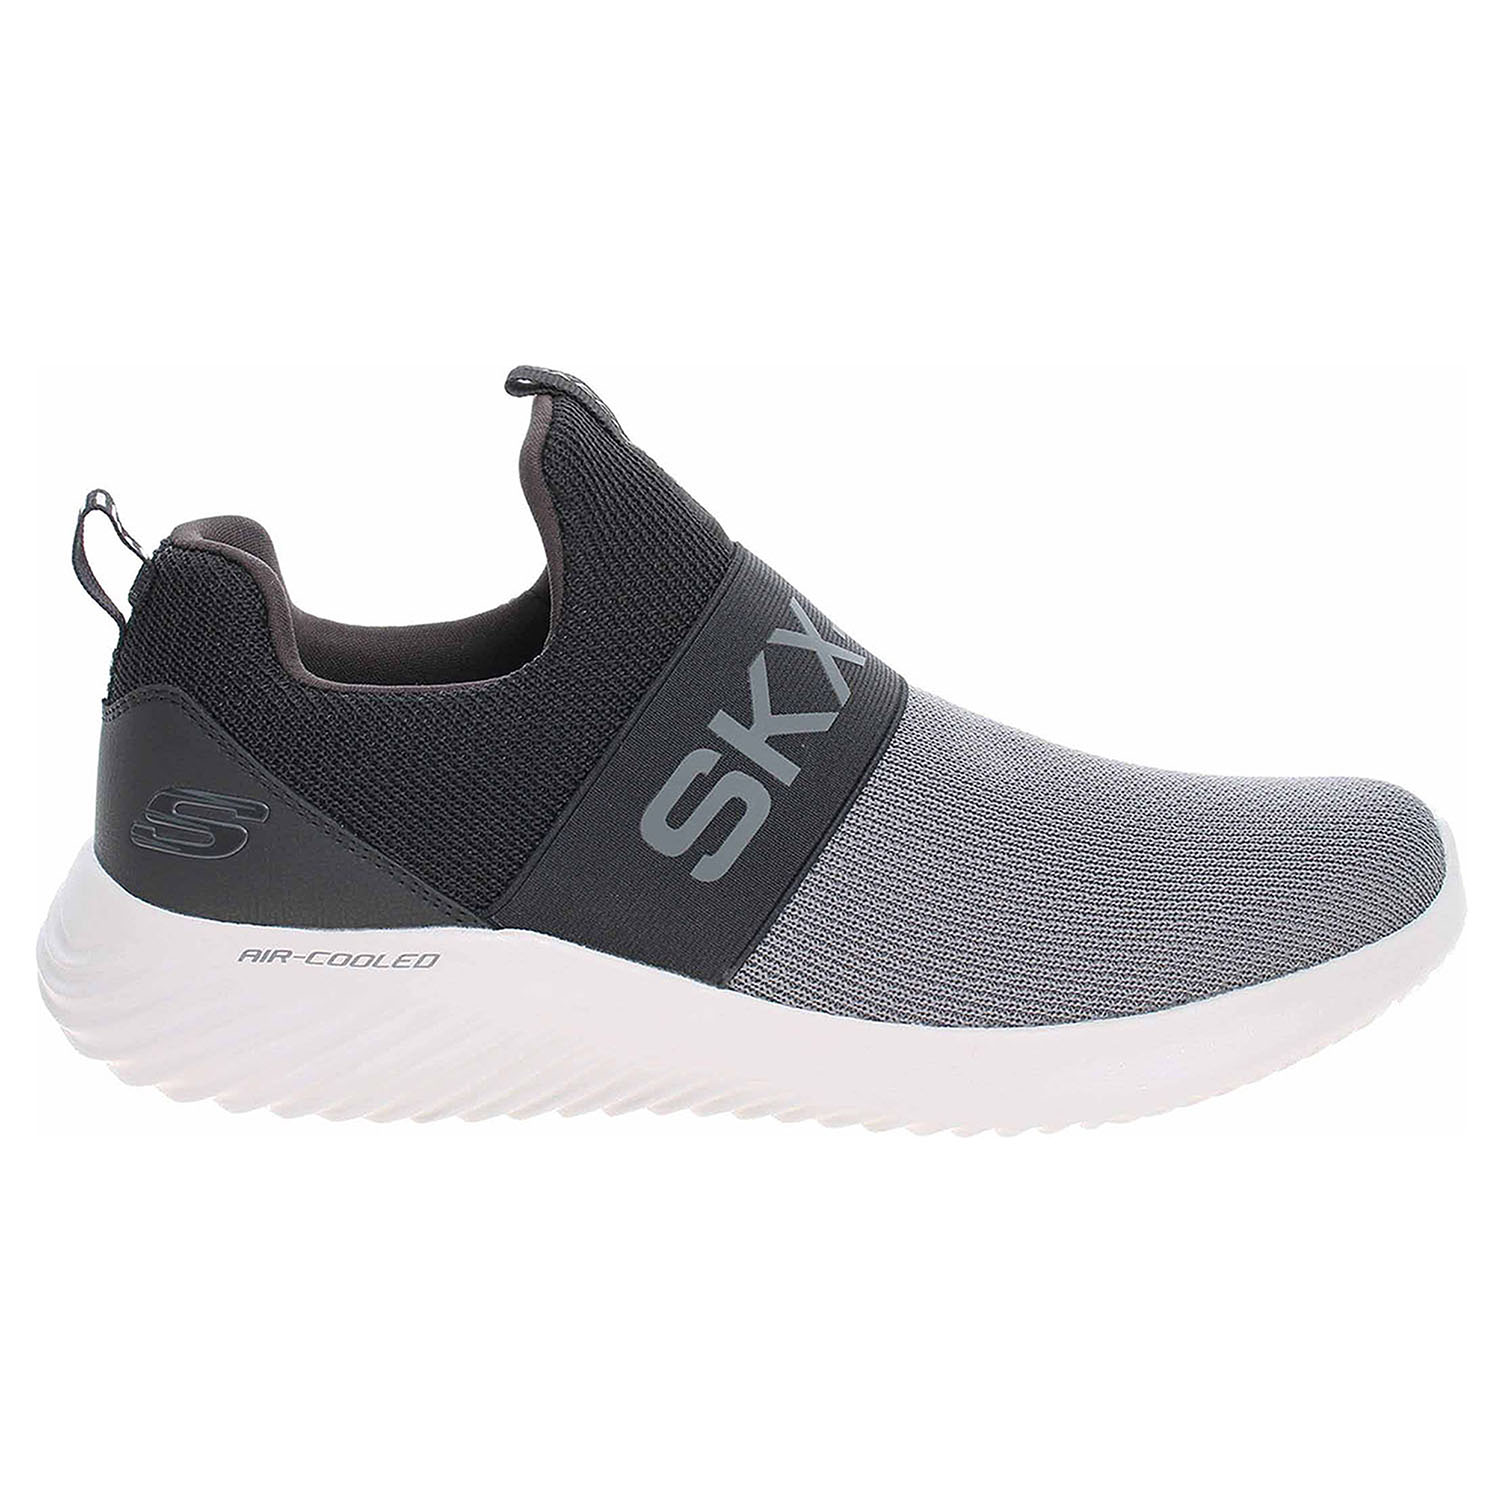 Skechers Bounder - Wolfston charcoal-black